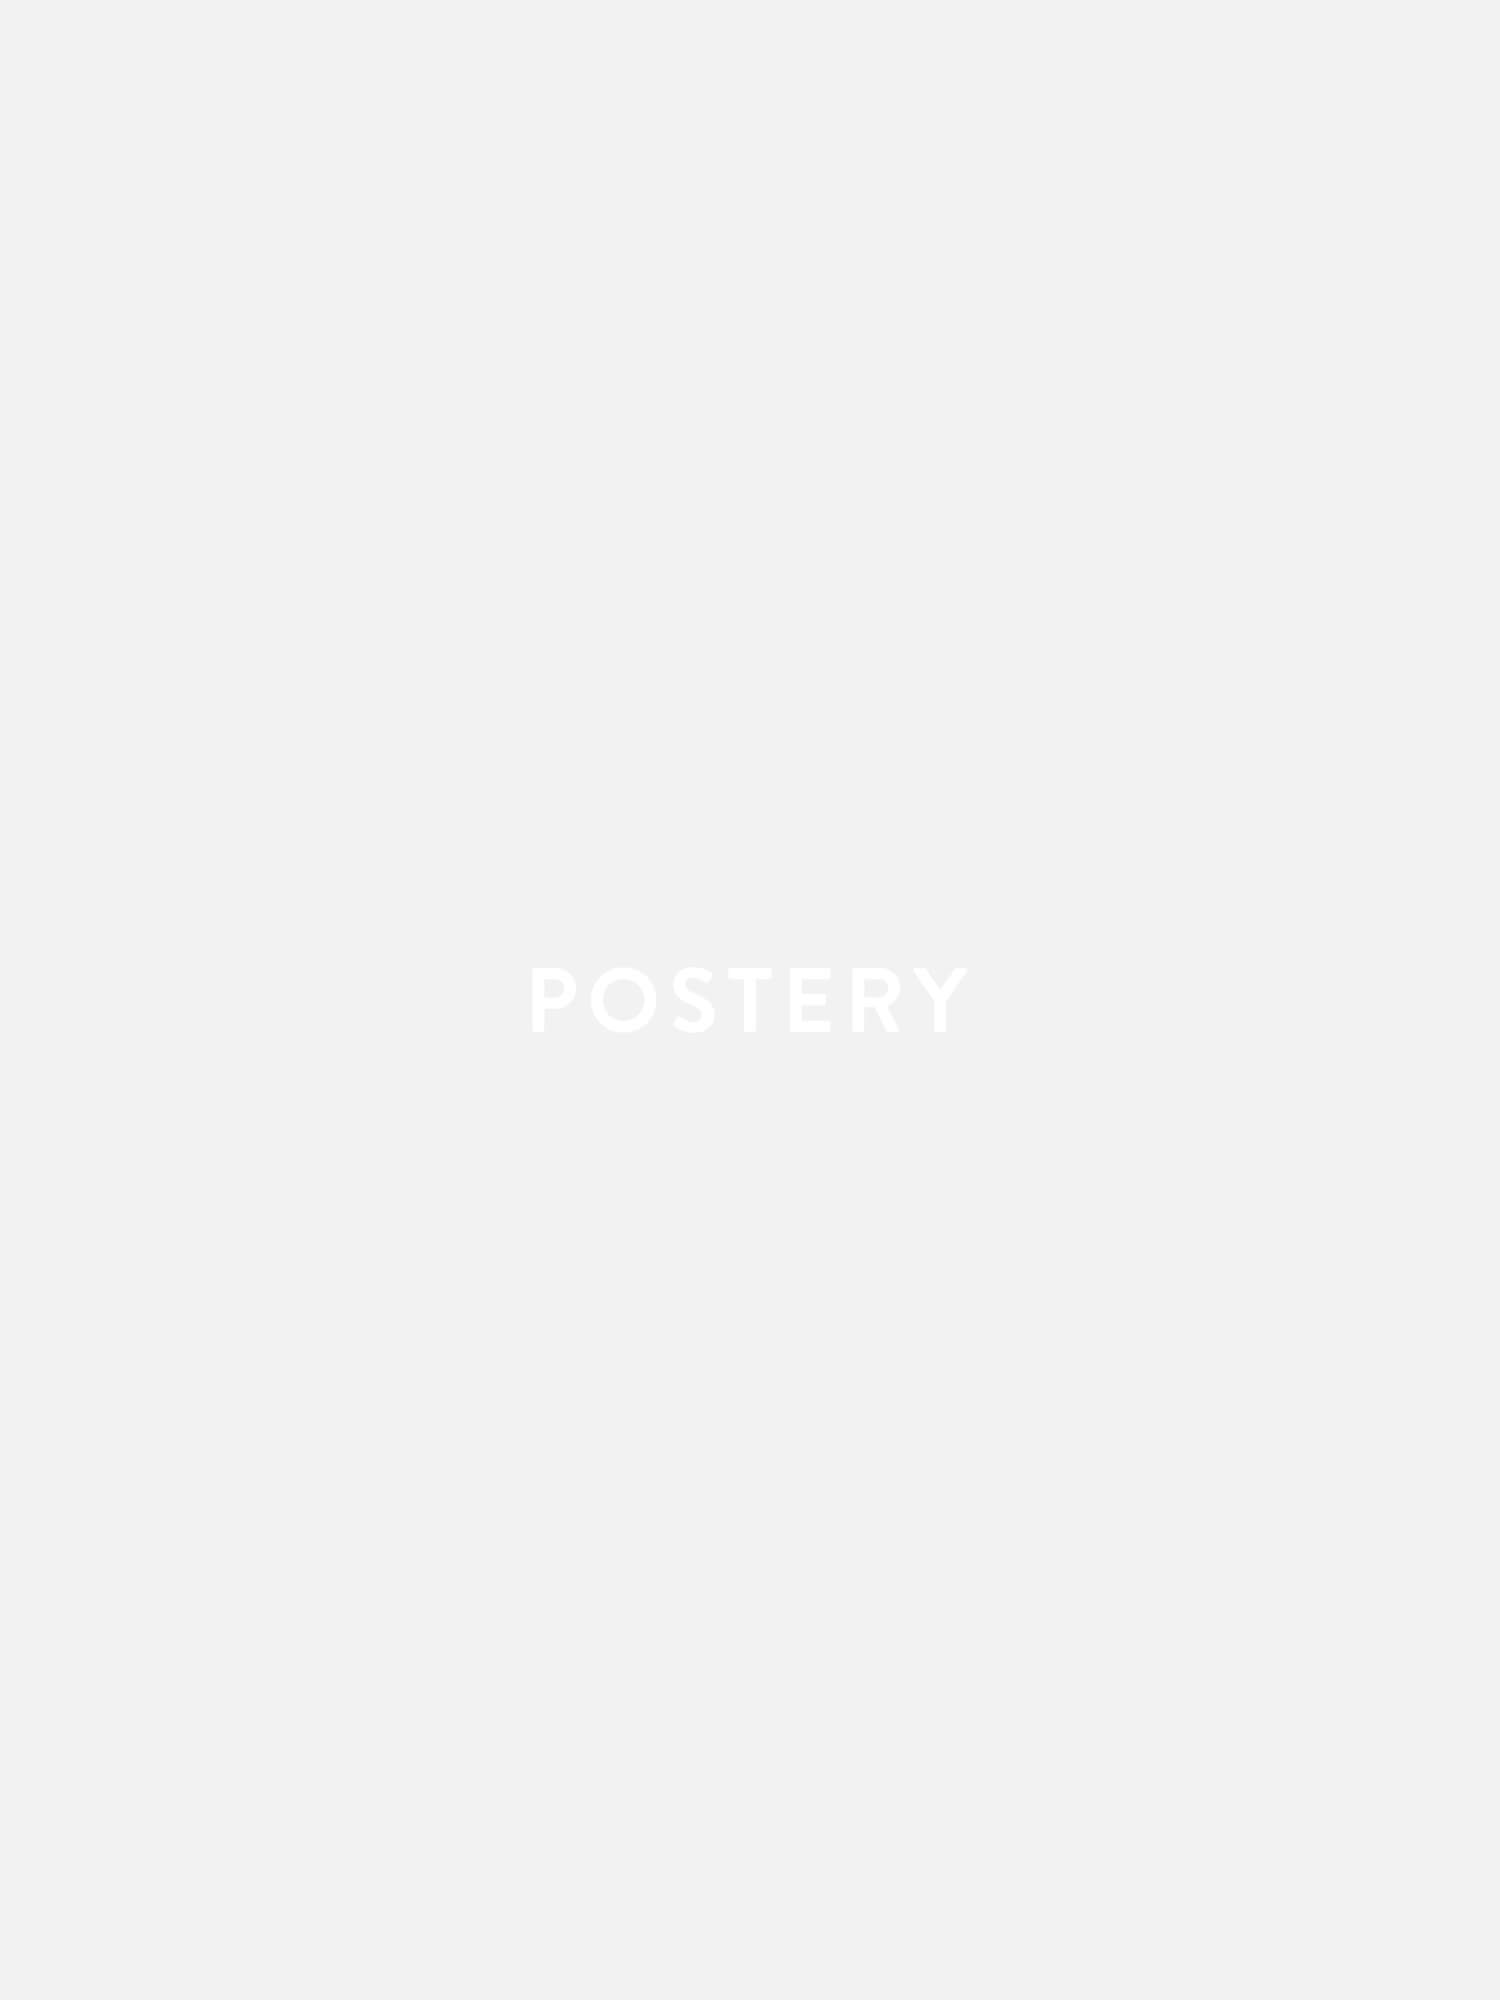 Bunny with Balloon Poster